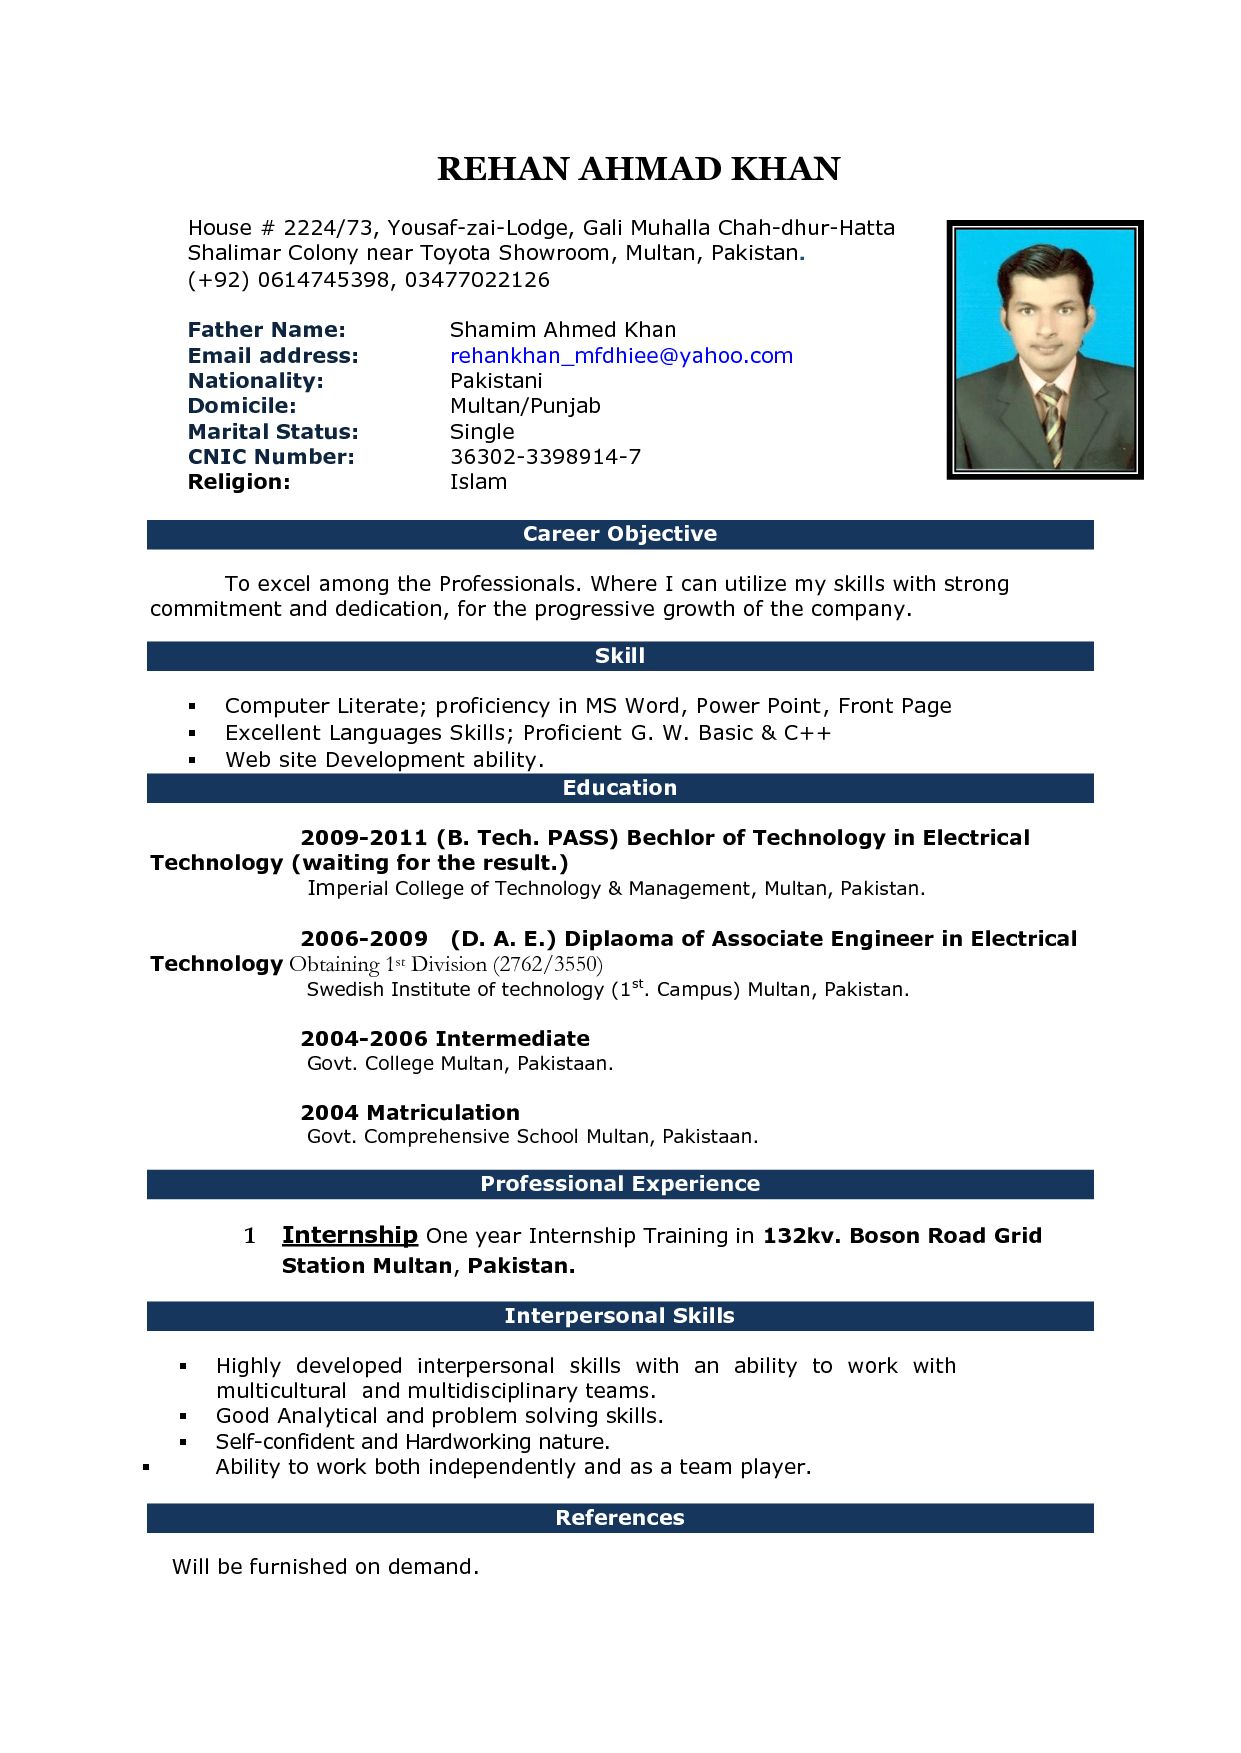 Free Download Cv Format In Ms Word Fieldstationco Microsoft Office Resume Templates Free Download With Images Resume Format Download Download Cv Format Resume Format For Freshers